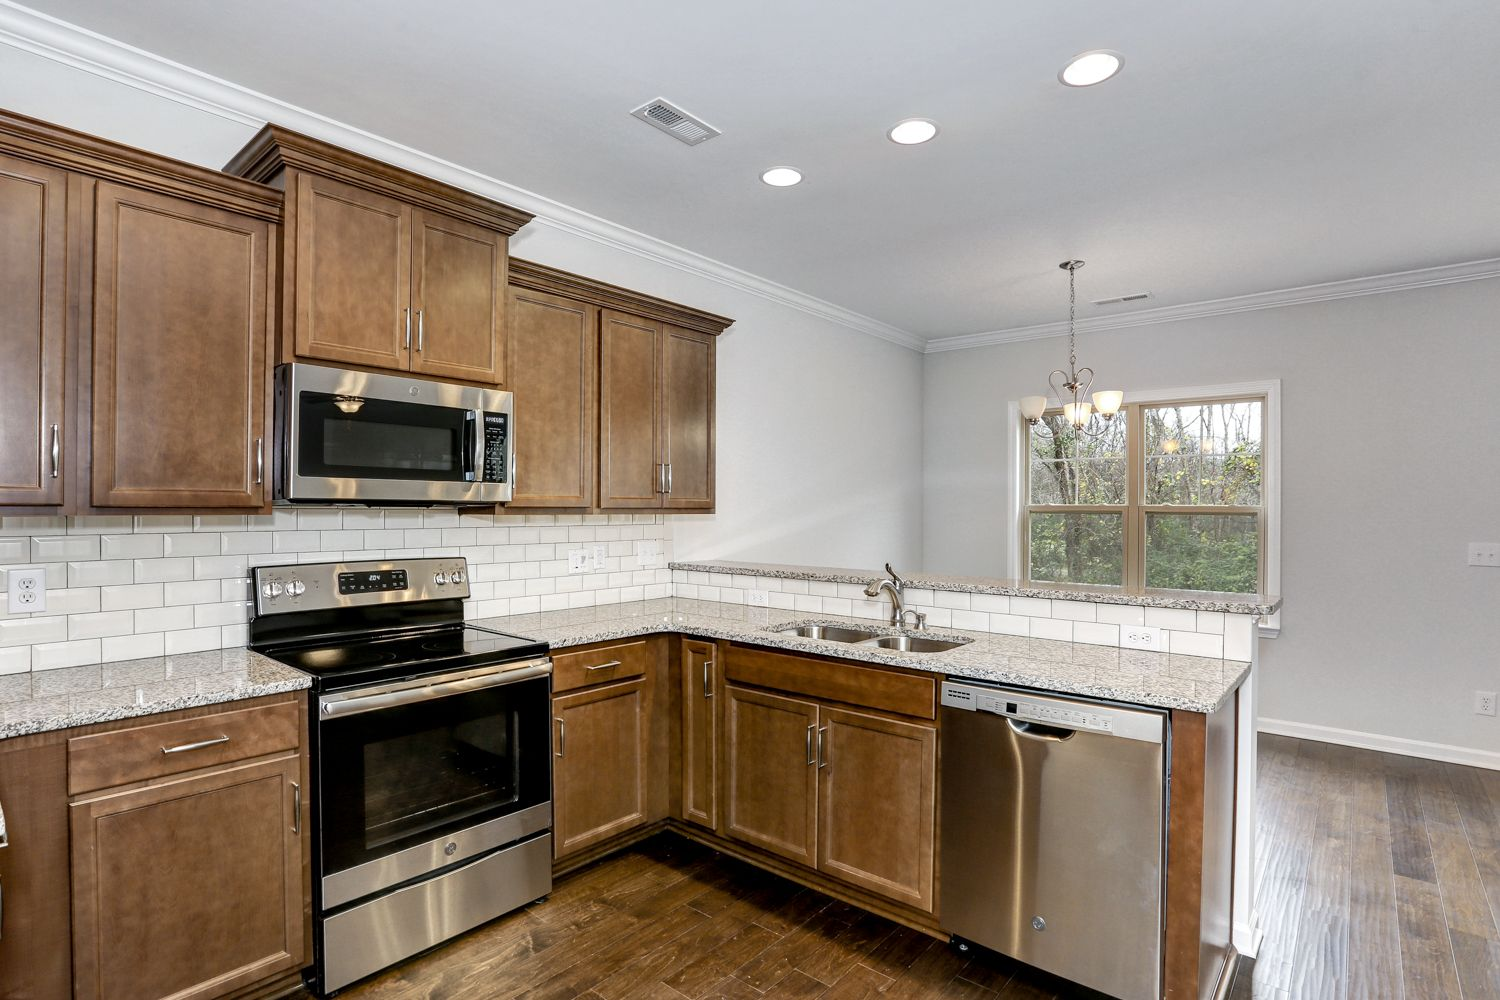 Kitchen featured in The Richardson By Goodall Homes in Huntsville, AL